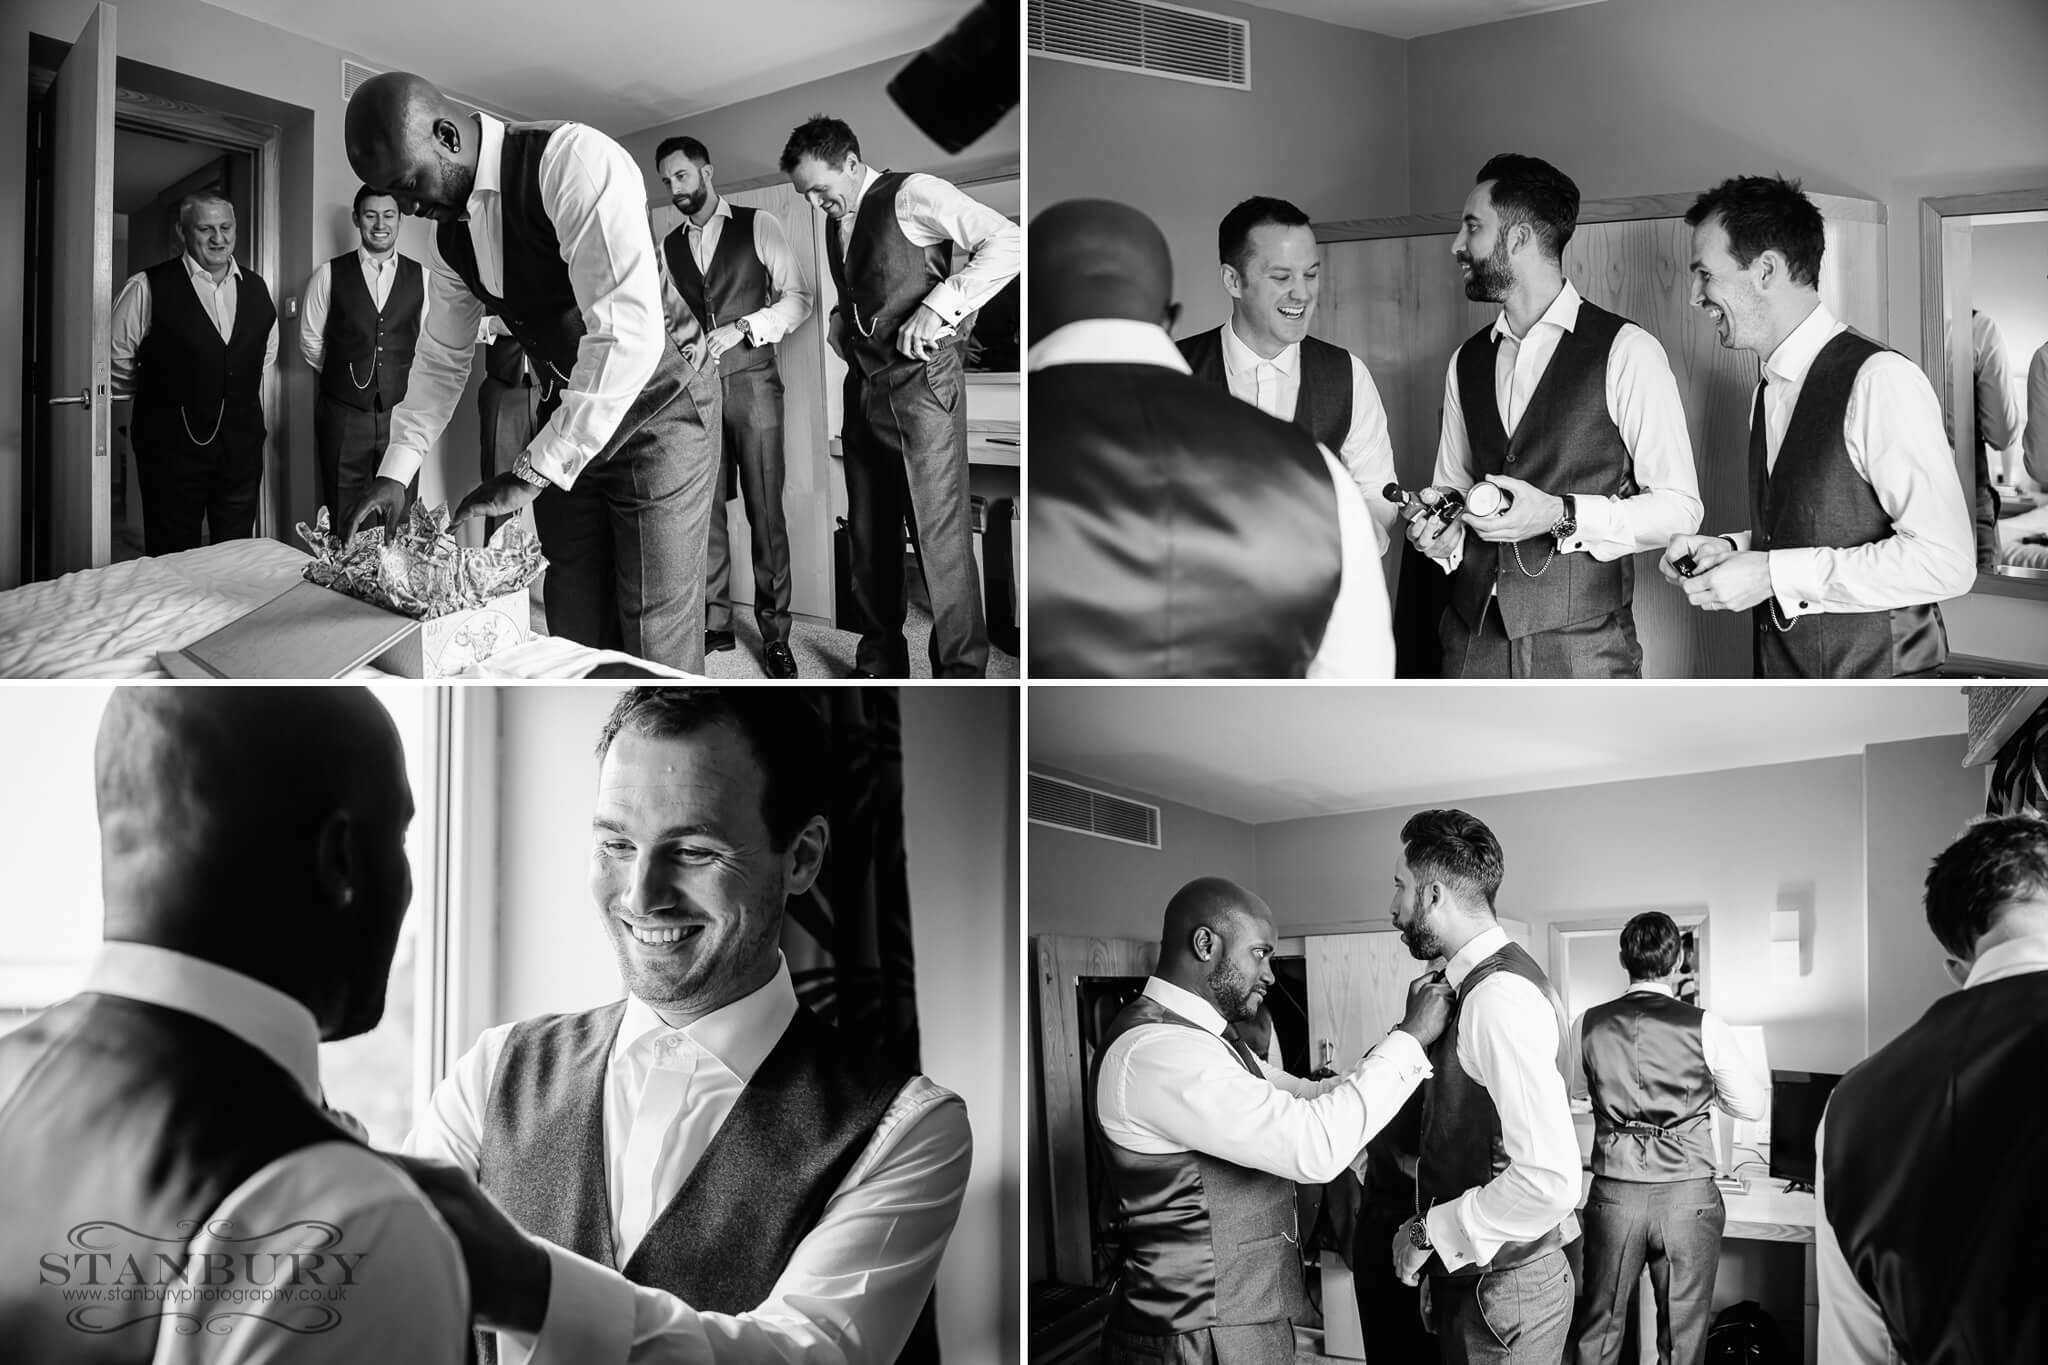 knowsley-hall-wedding-stanbury-photography-008